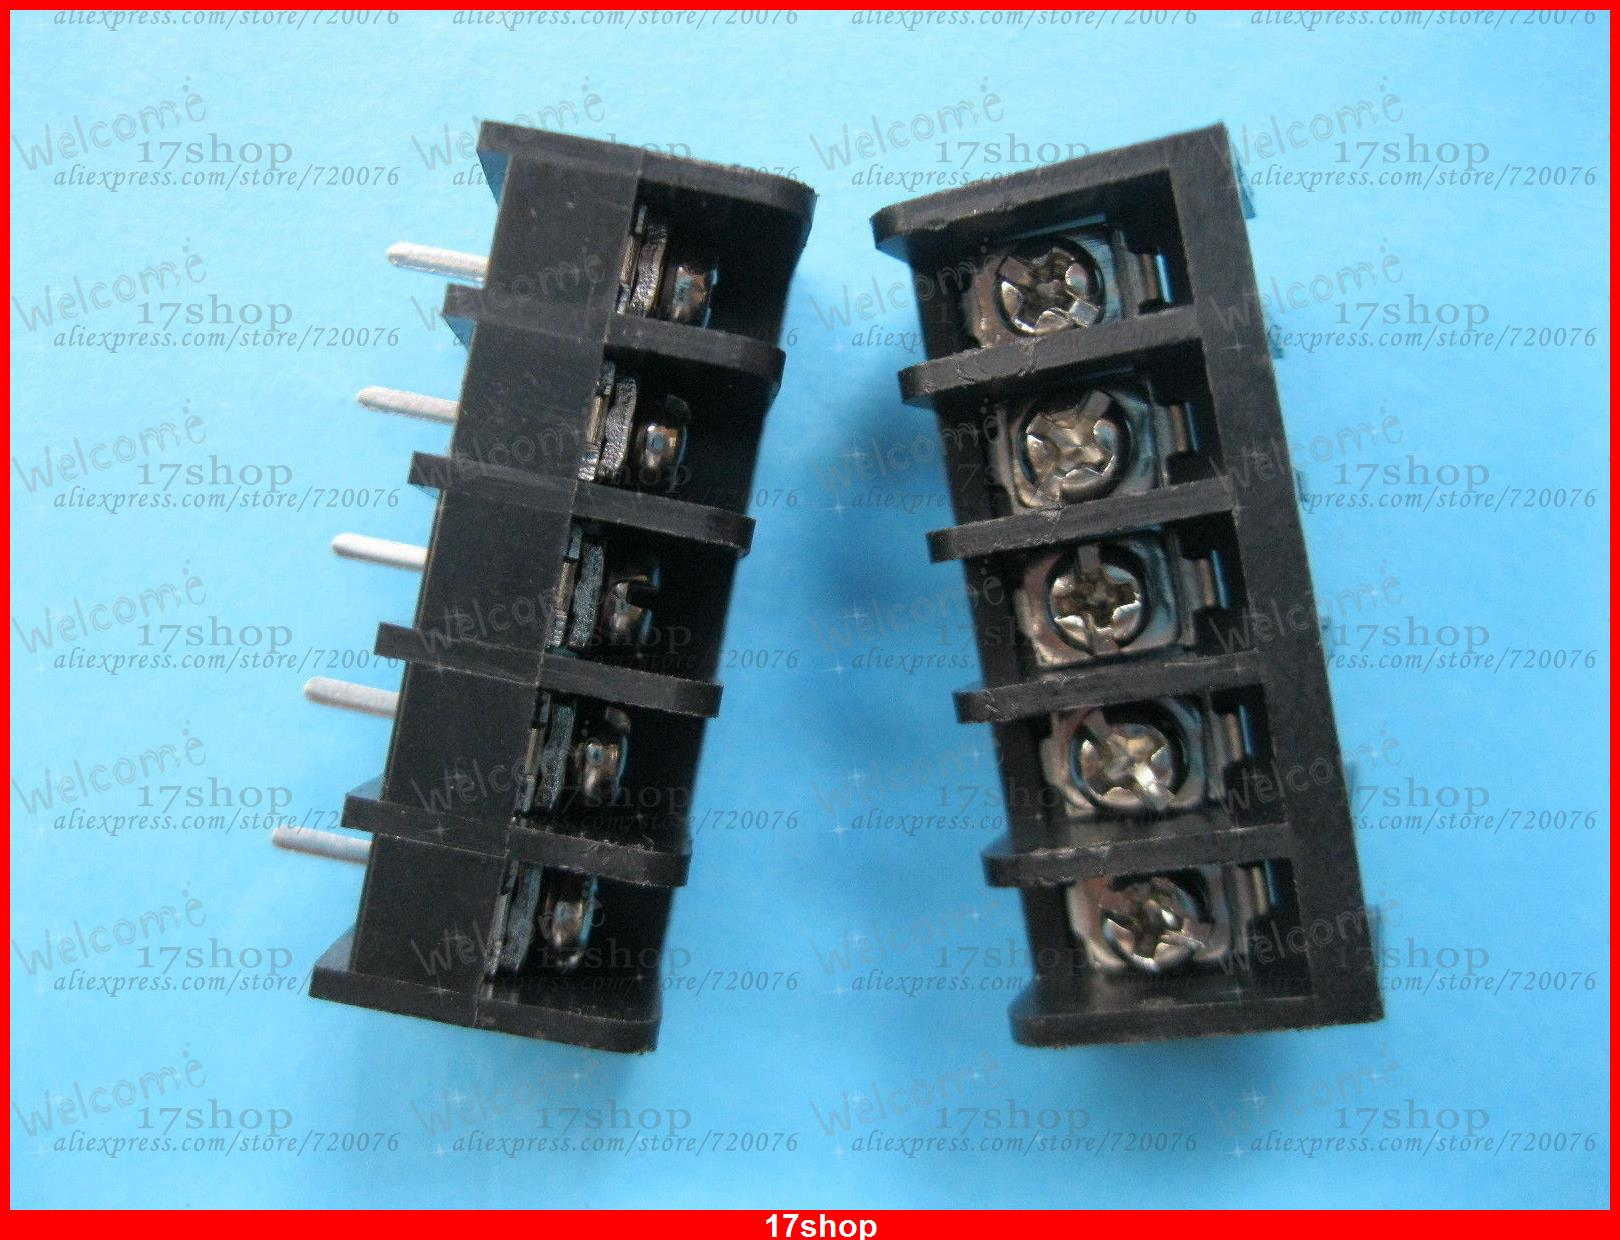 50 Pcs Black 5 Pin 635mm Screw Terminal Block Connector Barrier Din To 35mm Wiring Diagram Type Dc29b In Blocks From Home Improvement On Alibaba Group